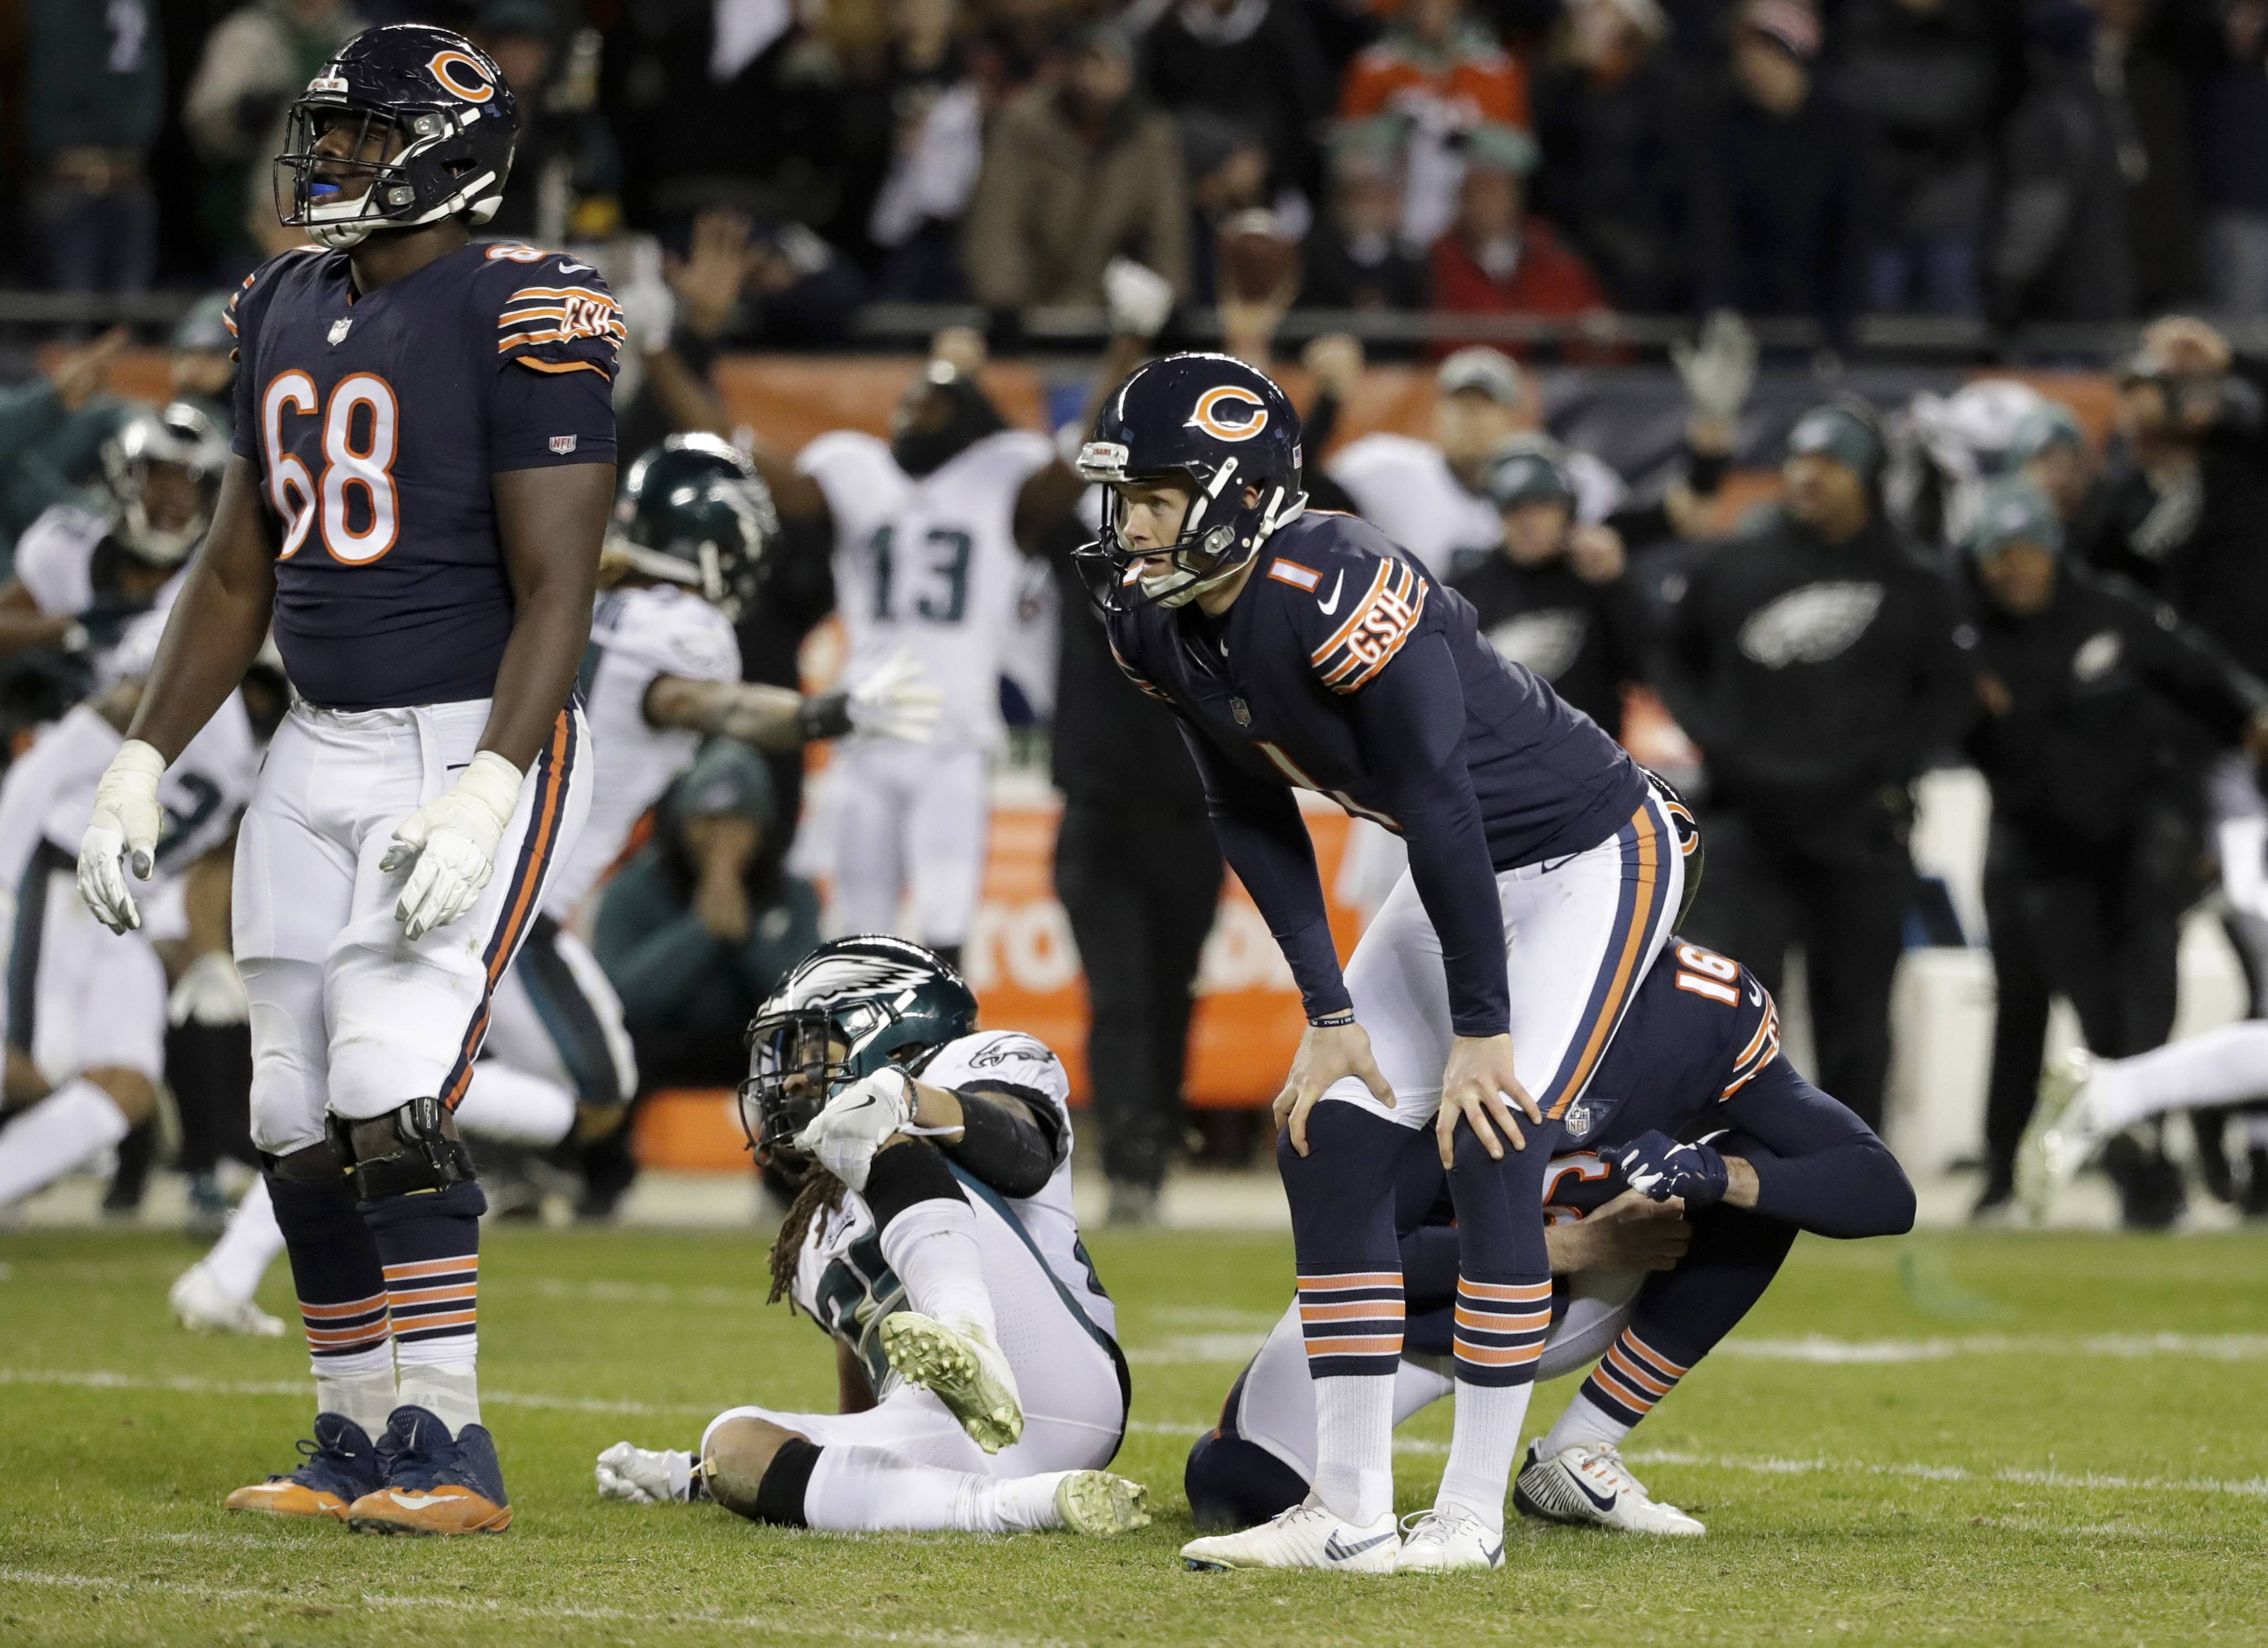 FILE — In this Jan. 6, 2019, file photo, Chicago Bears kicker Cody Parkey (1) reacts after missing a field goal in the closing minute of the team's NFL wild-card playoff football game against the Philadelphia Eagles in Chicago. A person familiar with the situation says the Bears have decided to release embattled kicker Parkey after one season. The person spoke Friday, Feb. 22, 2019, on the condition of anonymity because the move had not been announced. Signed to a four-year contract in March, Parkey made just 23 of 30 field goals during the regular season for the third-lowest conversion rate in the NFL. He was 42 of 45 on extra points. (AP Photo/Nam Y. Huh, File)